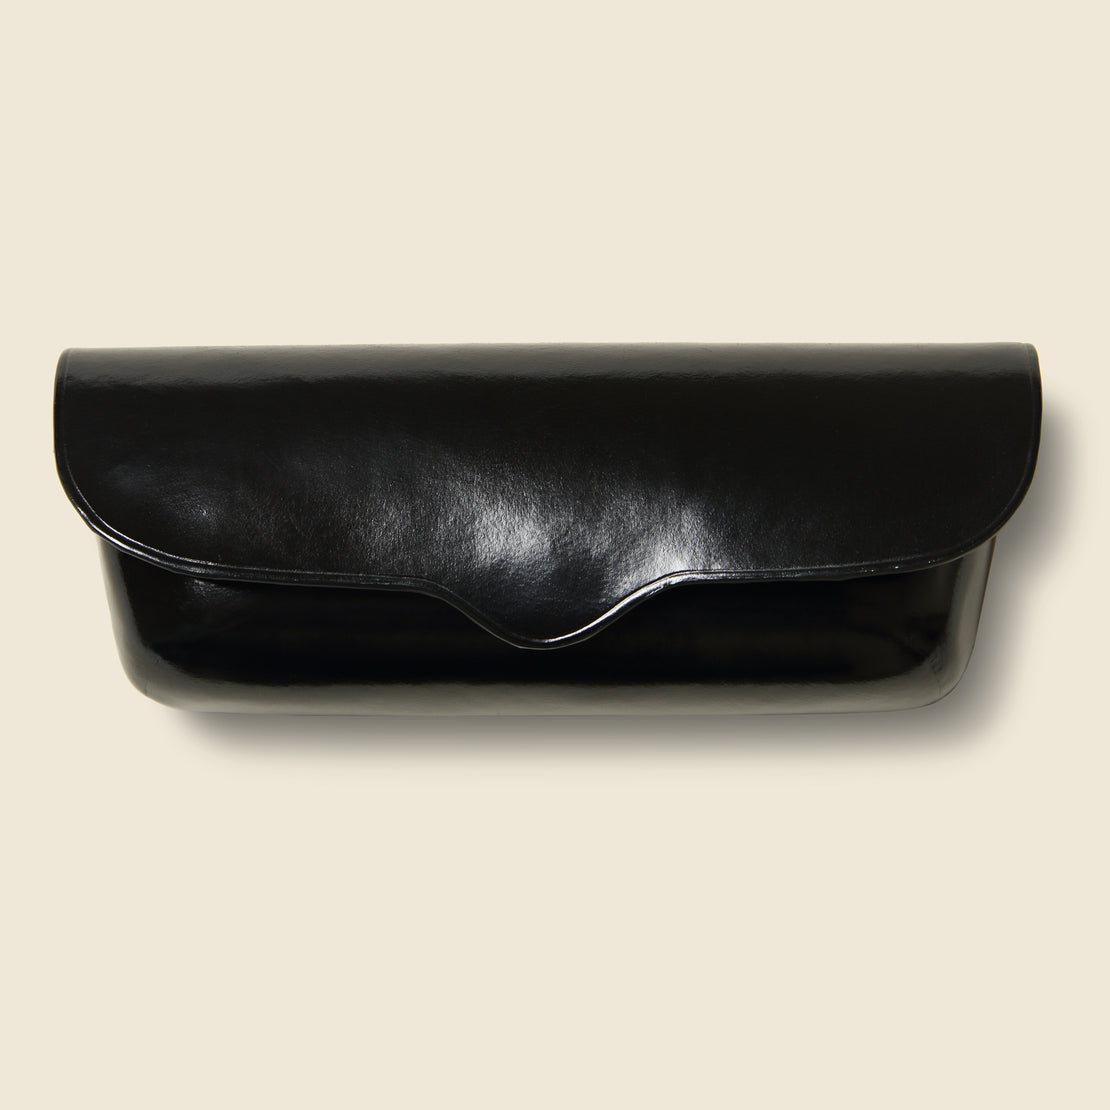 Il Bussetto Eyeglass Case - Black